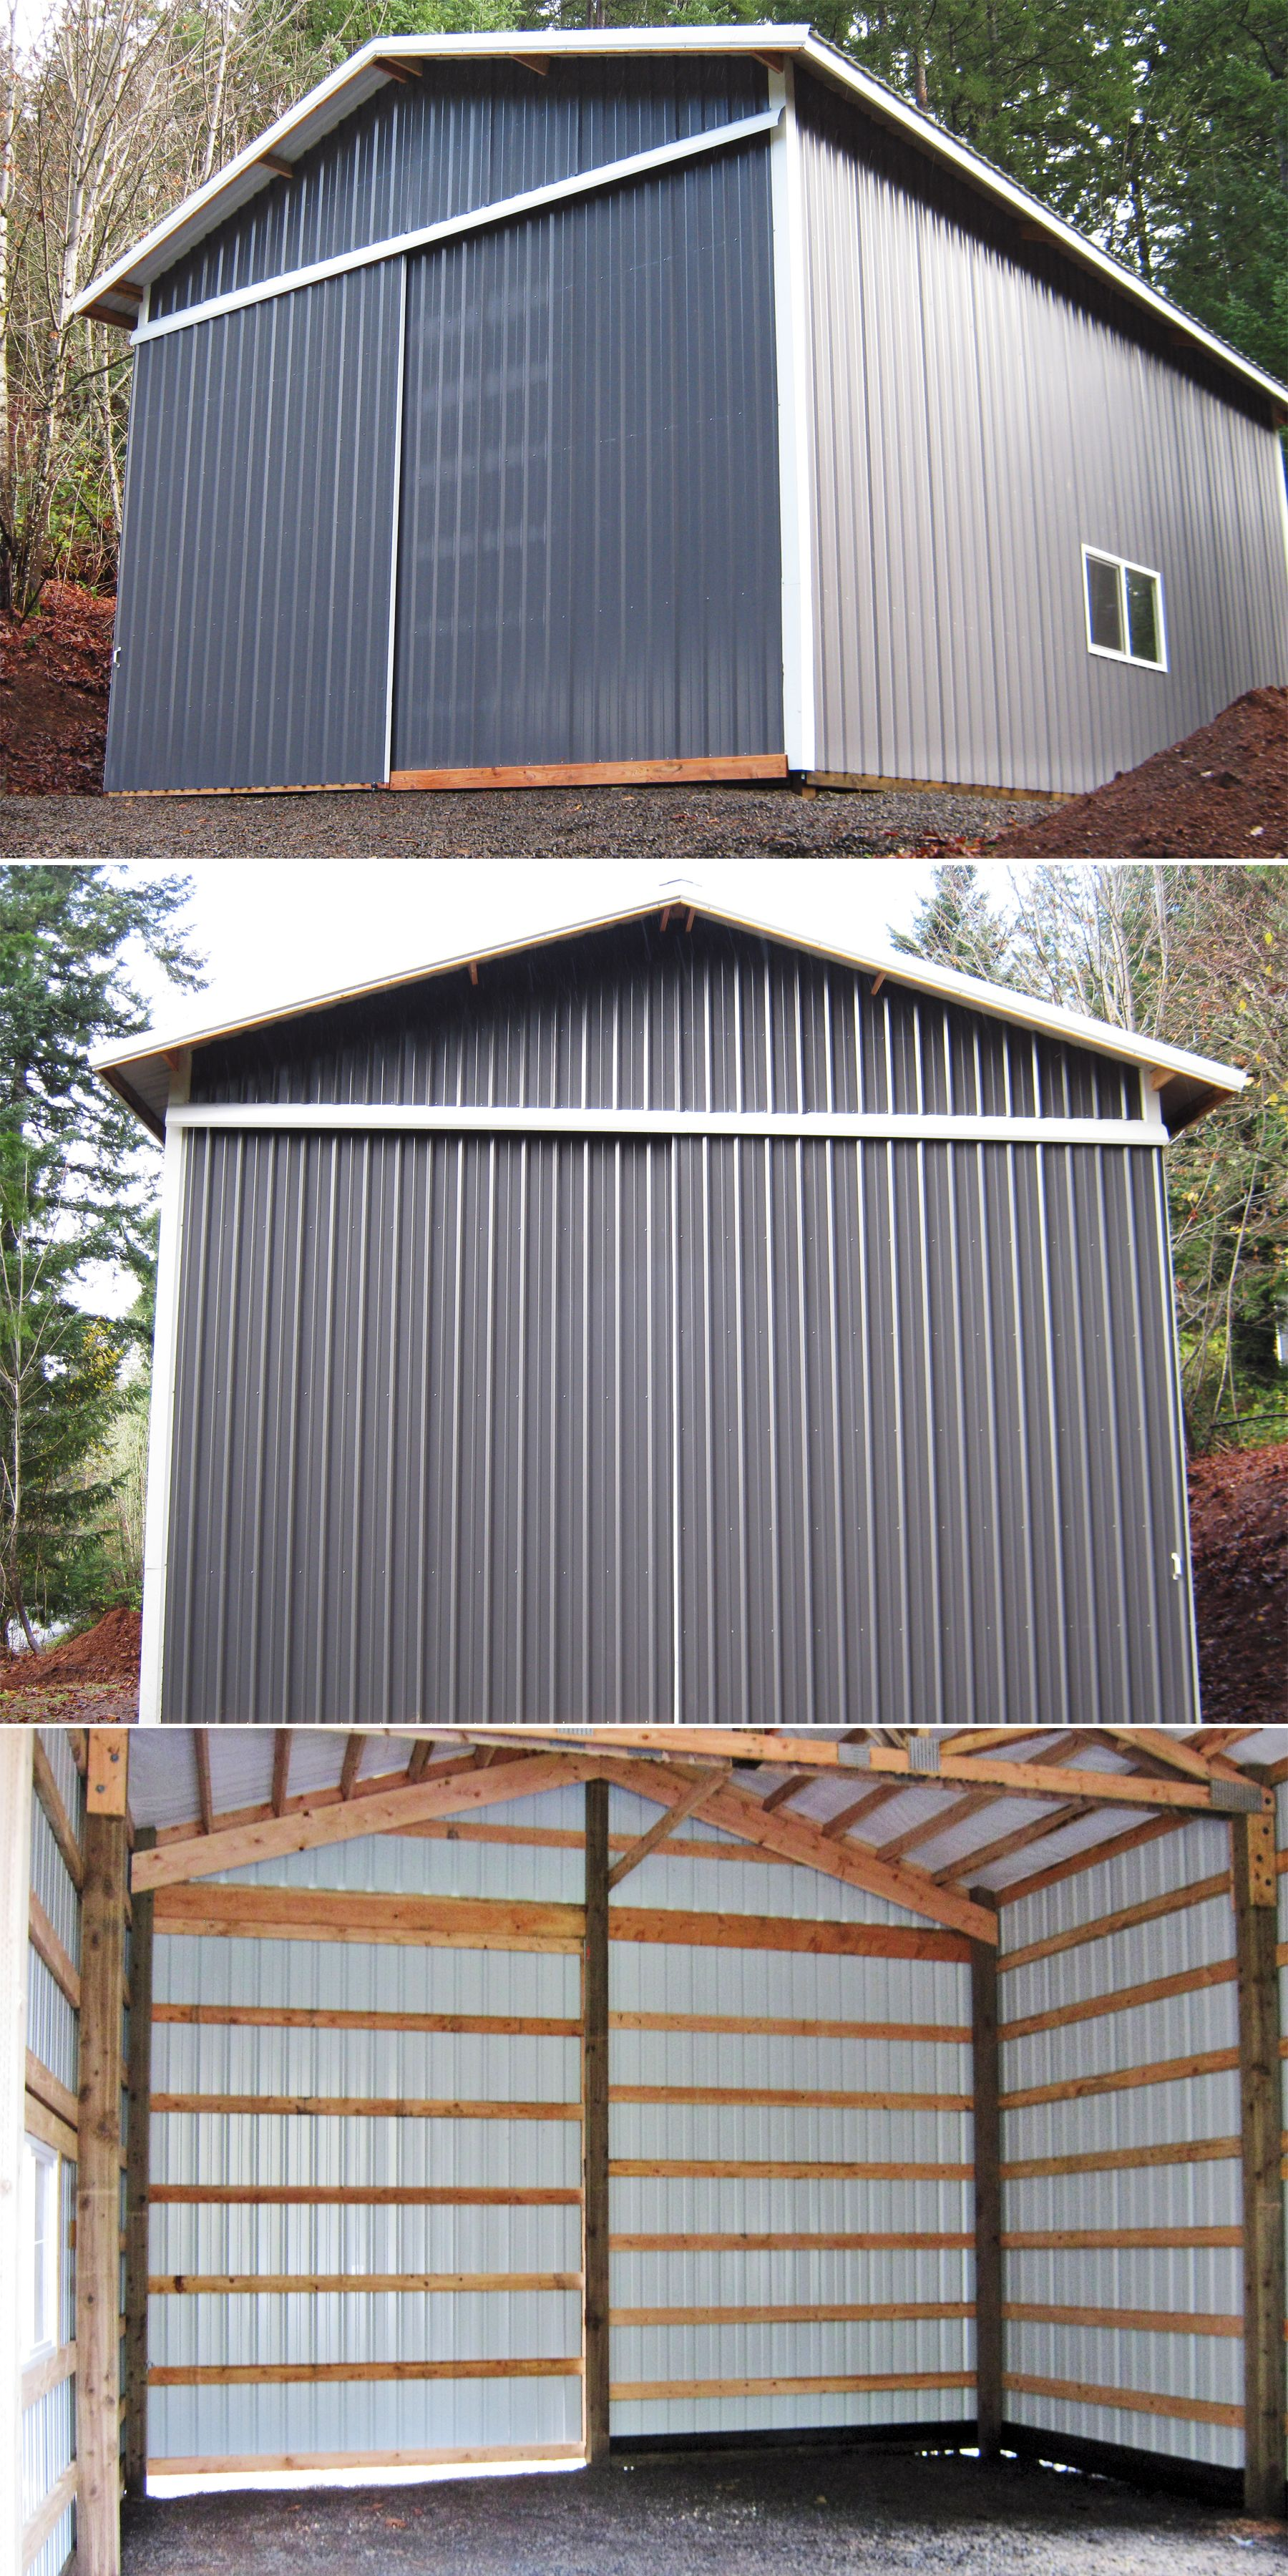 24 X 36 X 16 Pole Building With Slider Door Overhang And 6 X 3 Window Www Econofabbuildings Com Pole Buildings Barn Frame Pole Barn Construction